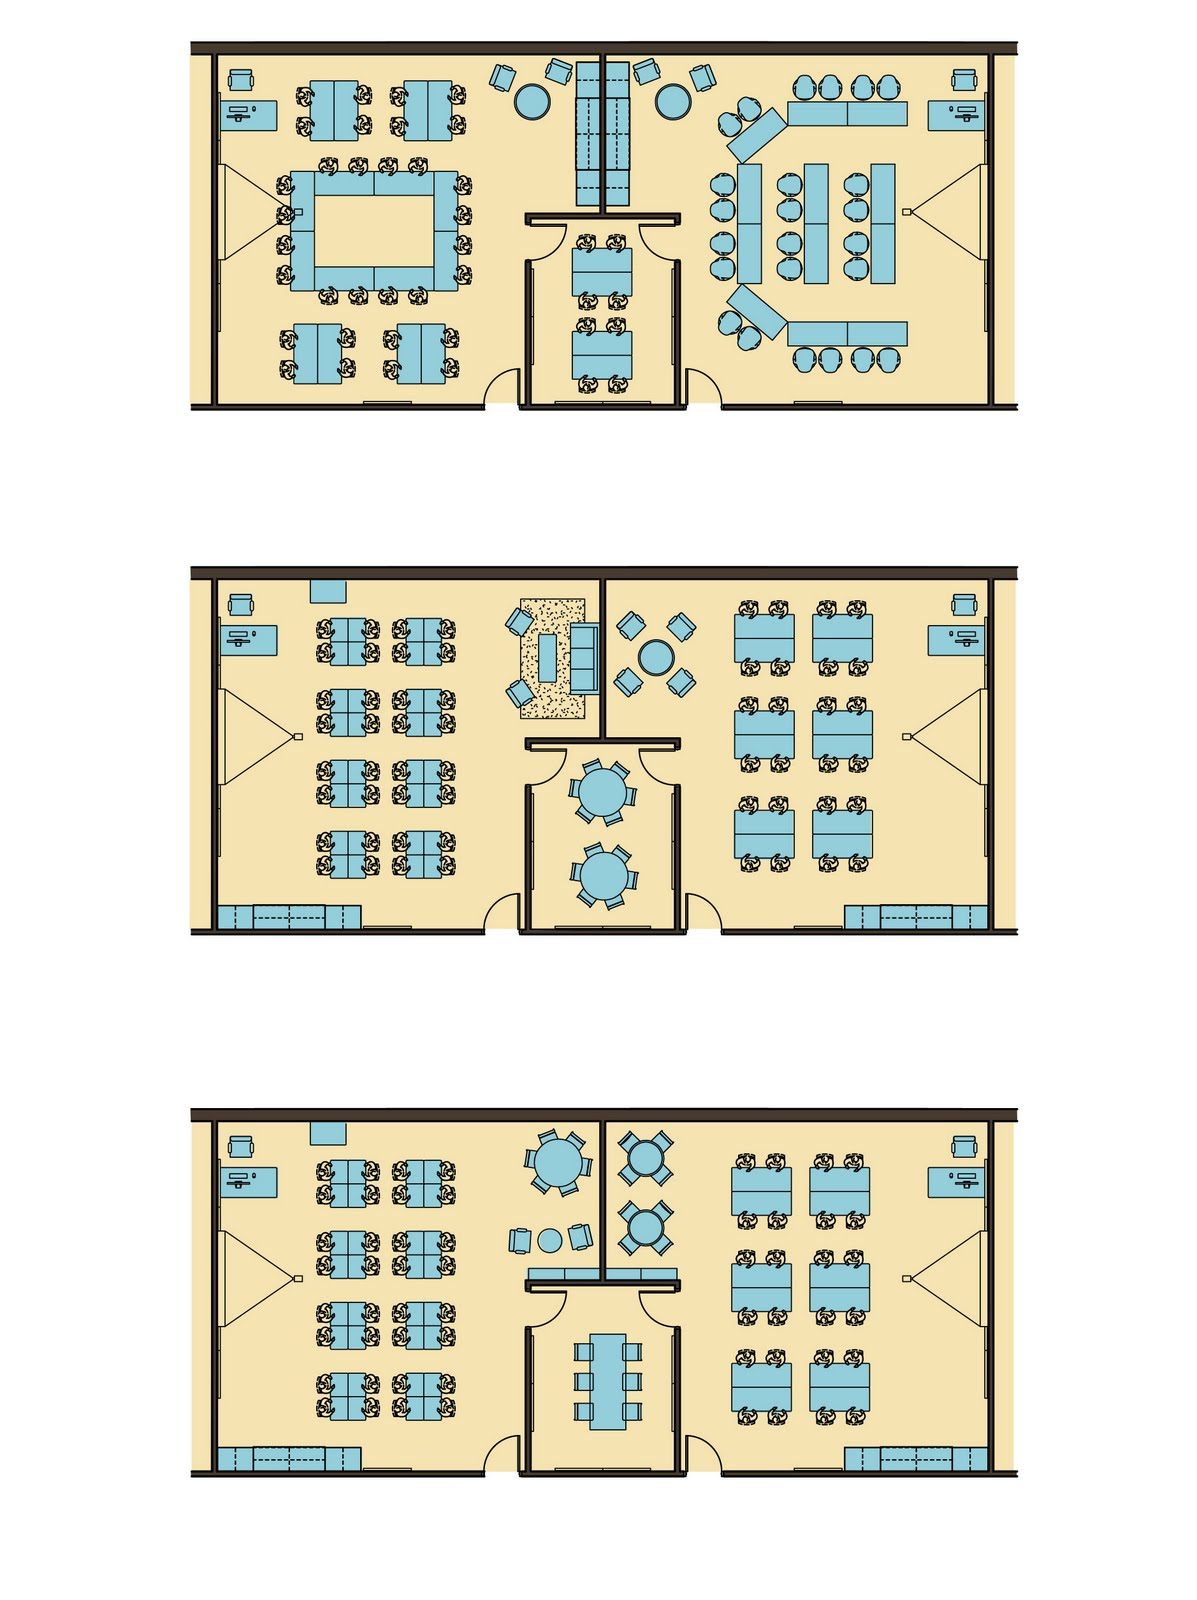 Classroom Design For High School ~ Bedford high school classroom layout options